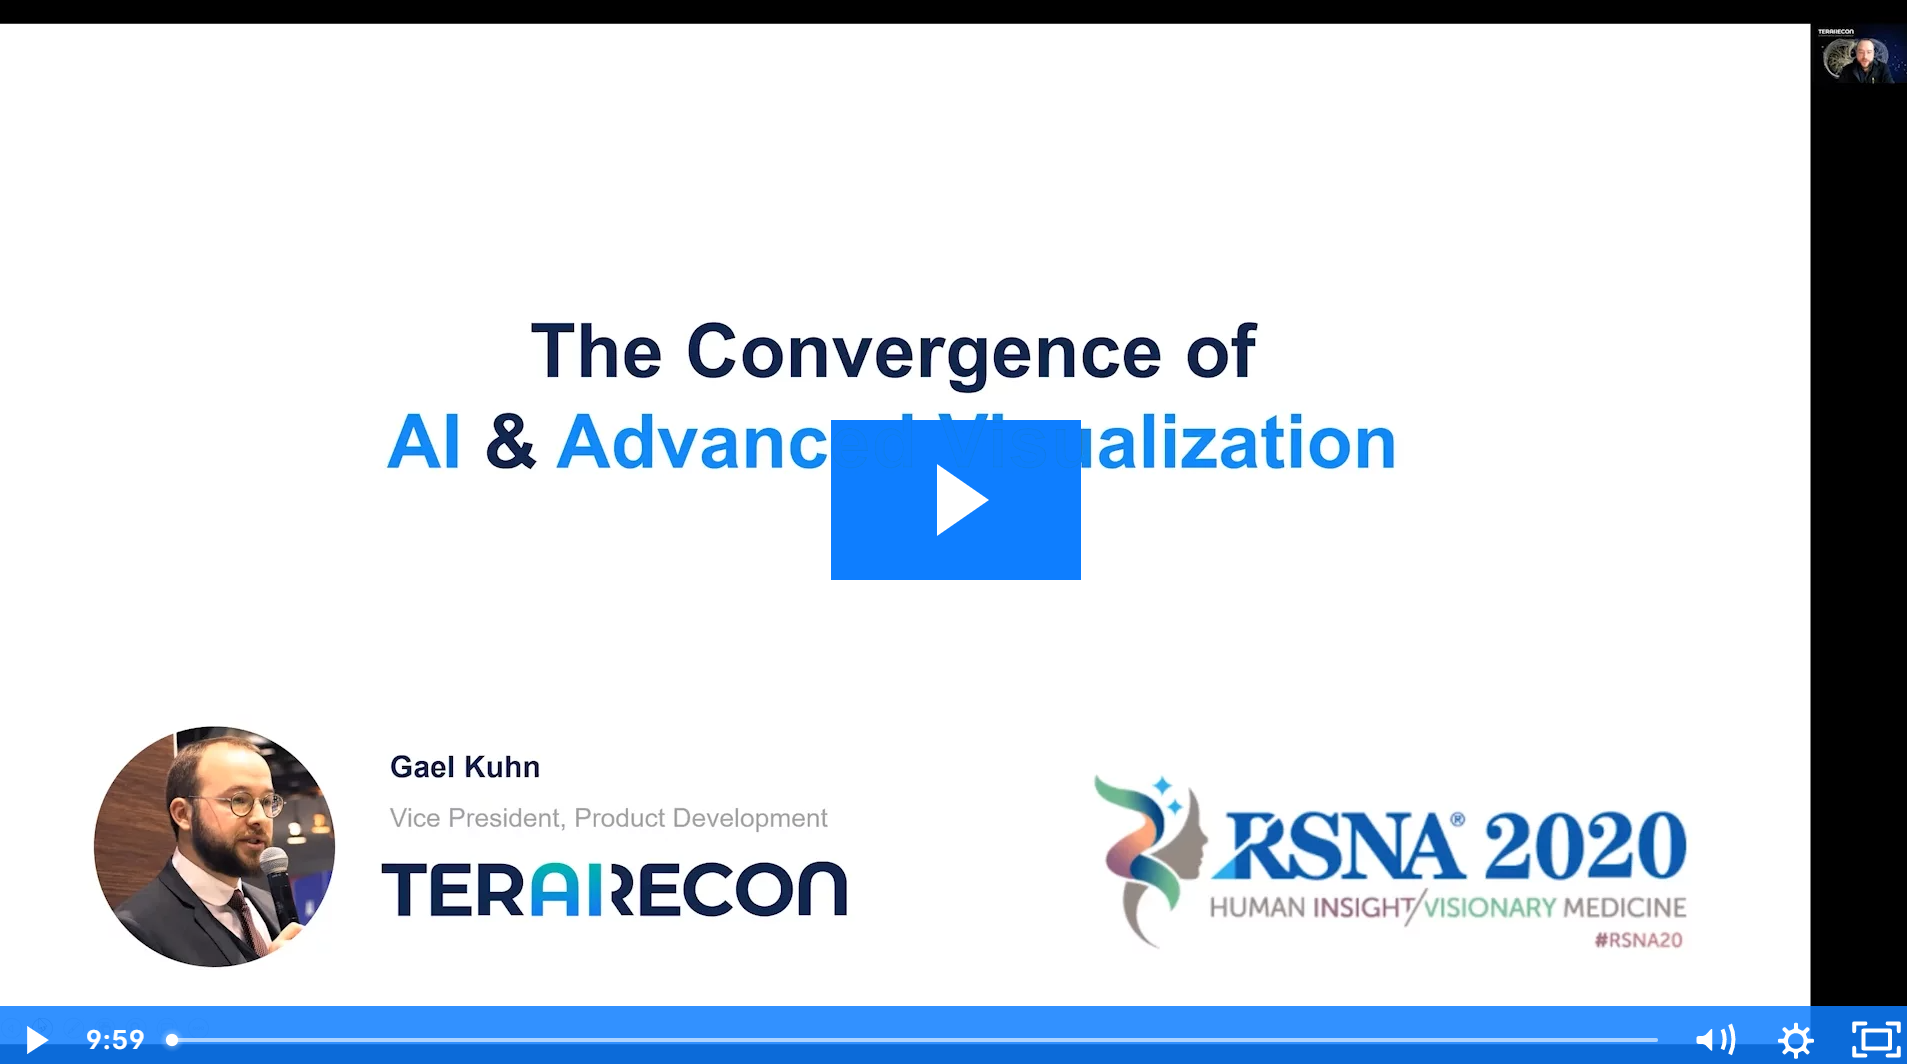 Innovation theatre presentation The Convergence of AI and Advanced Visualization